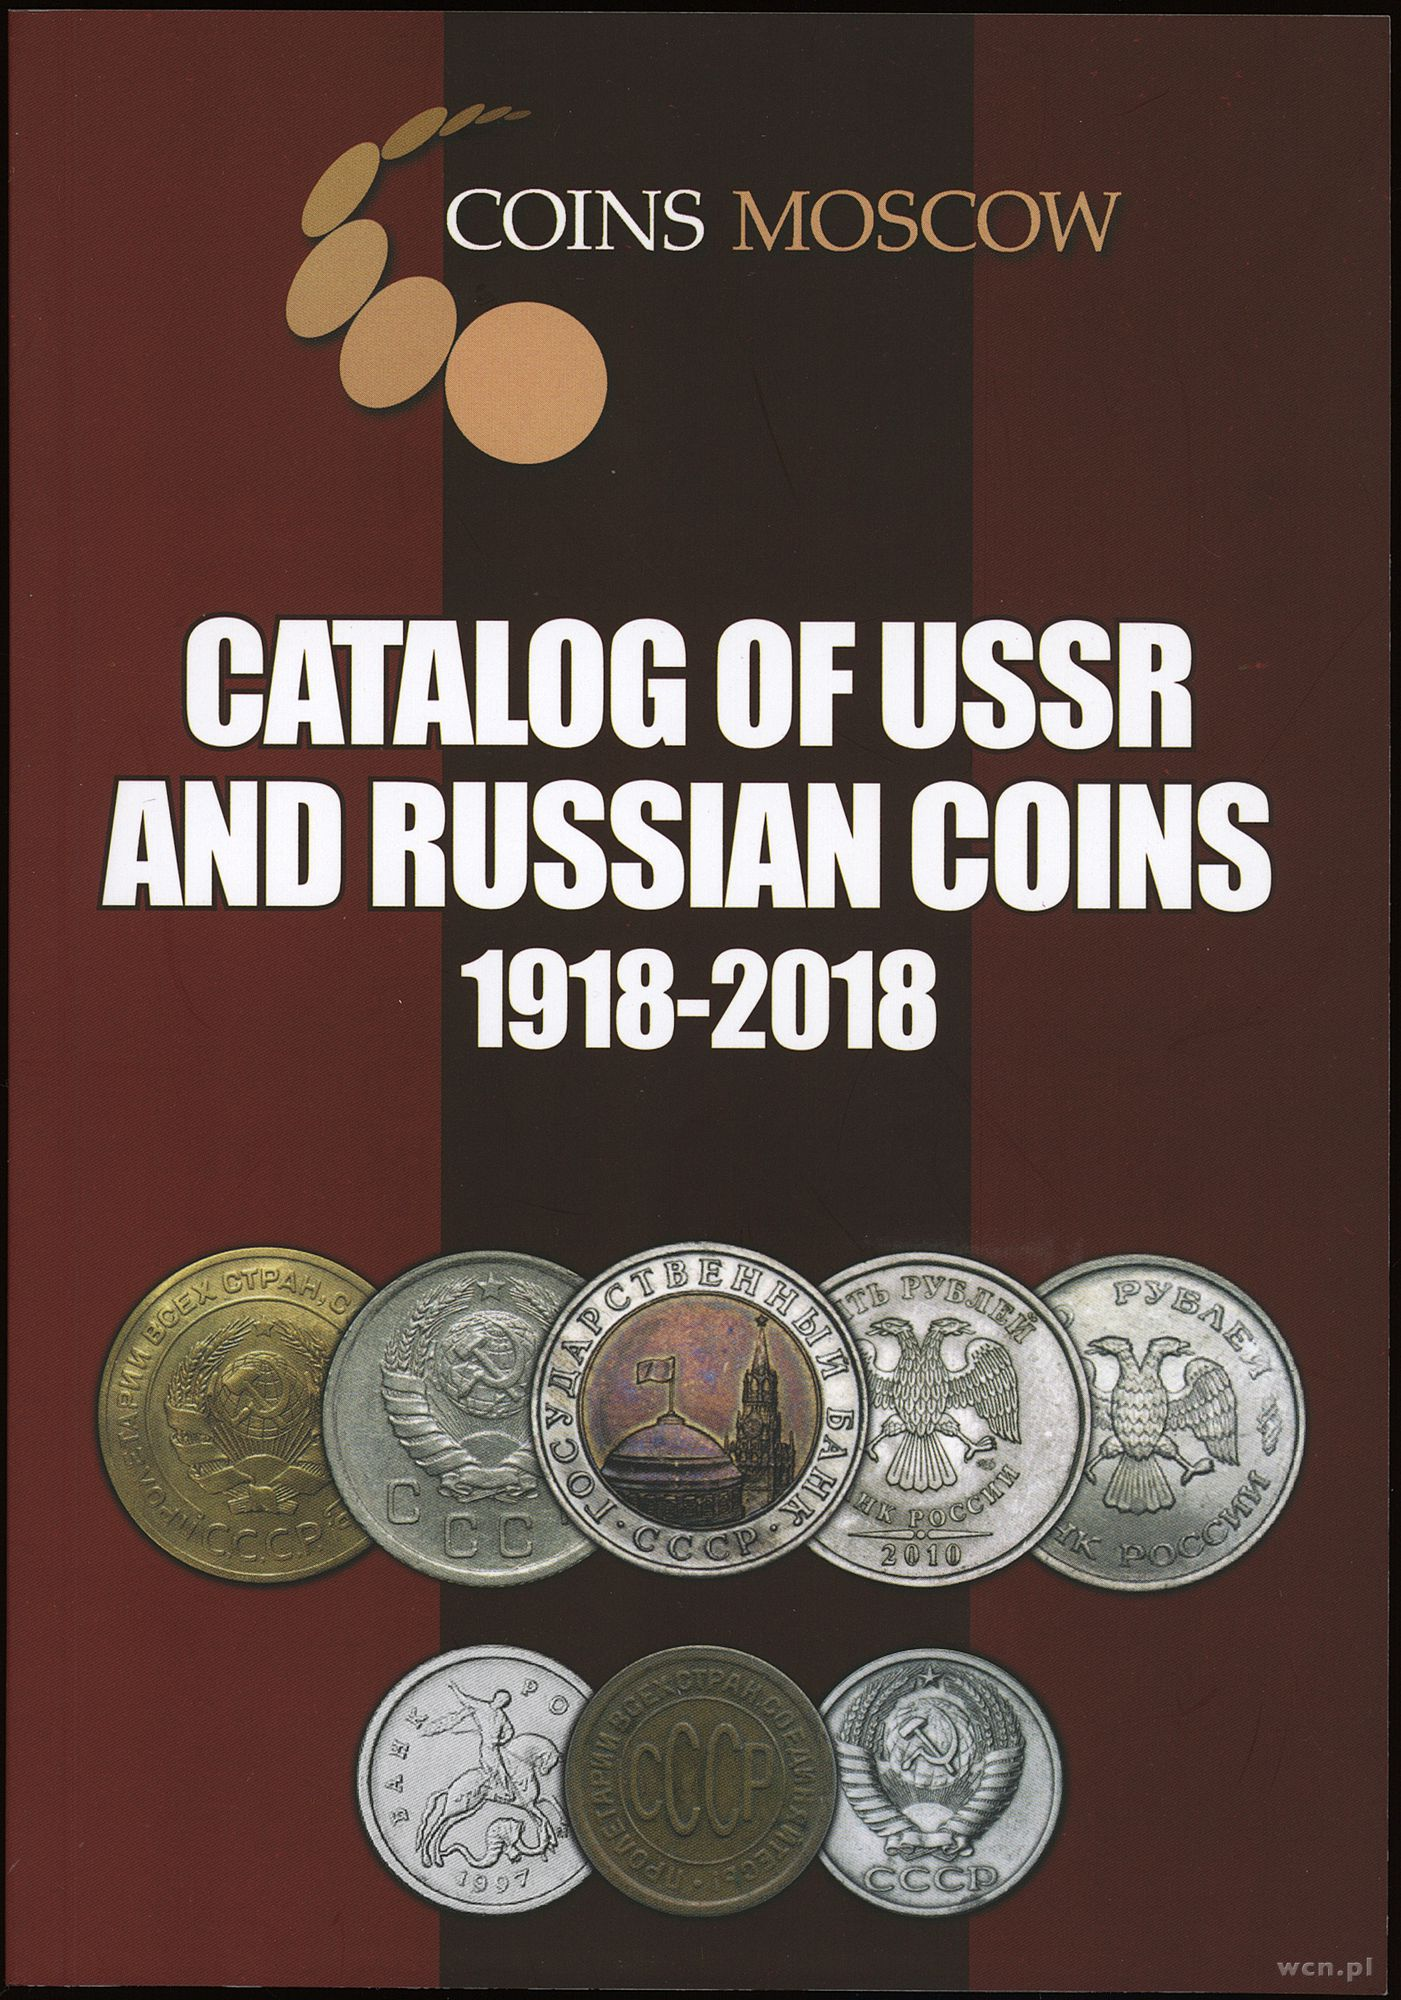 Coins Moscow - Catalog of USSR and Russian Coins